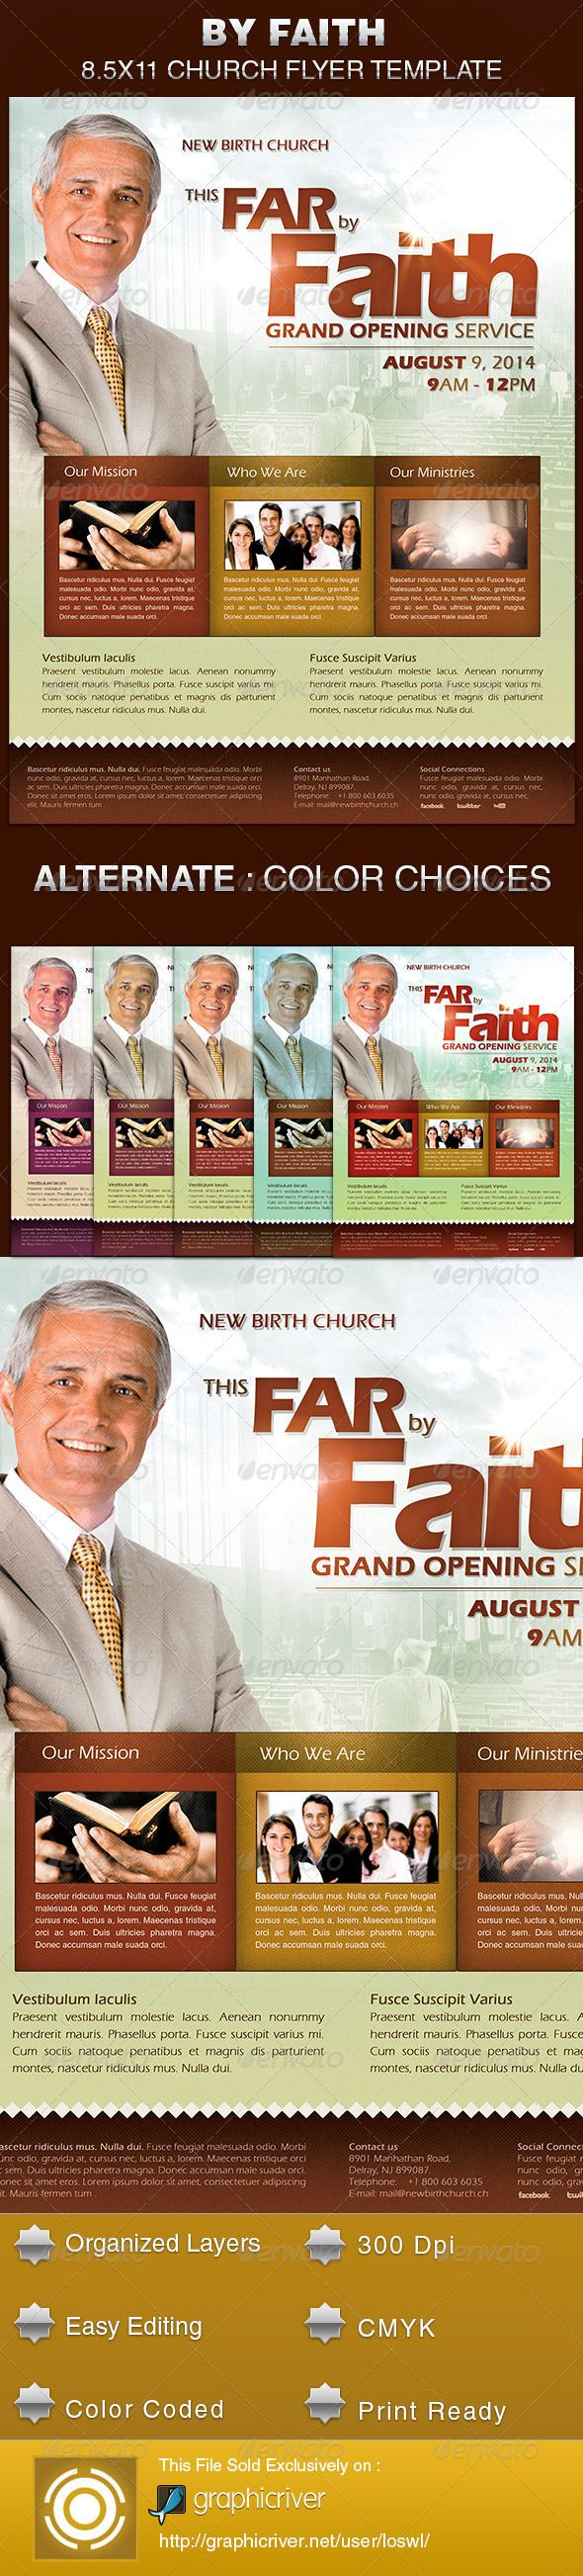 By Faith Church Grand Opening Flyer Template Is Sold Exclusively On Graphicriver It Can Be Used For Your Celebrations